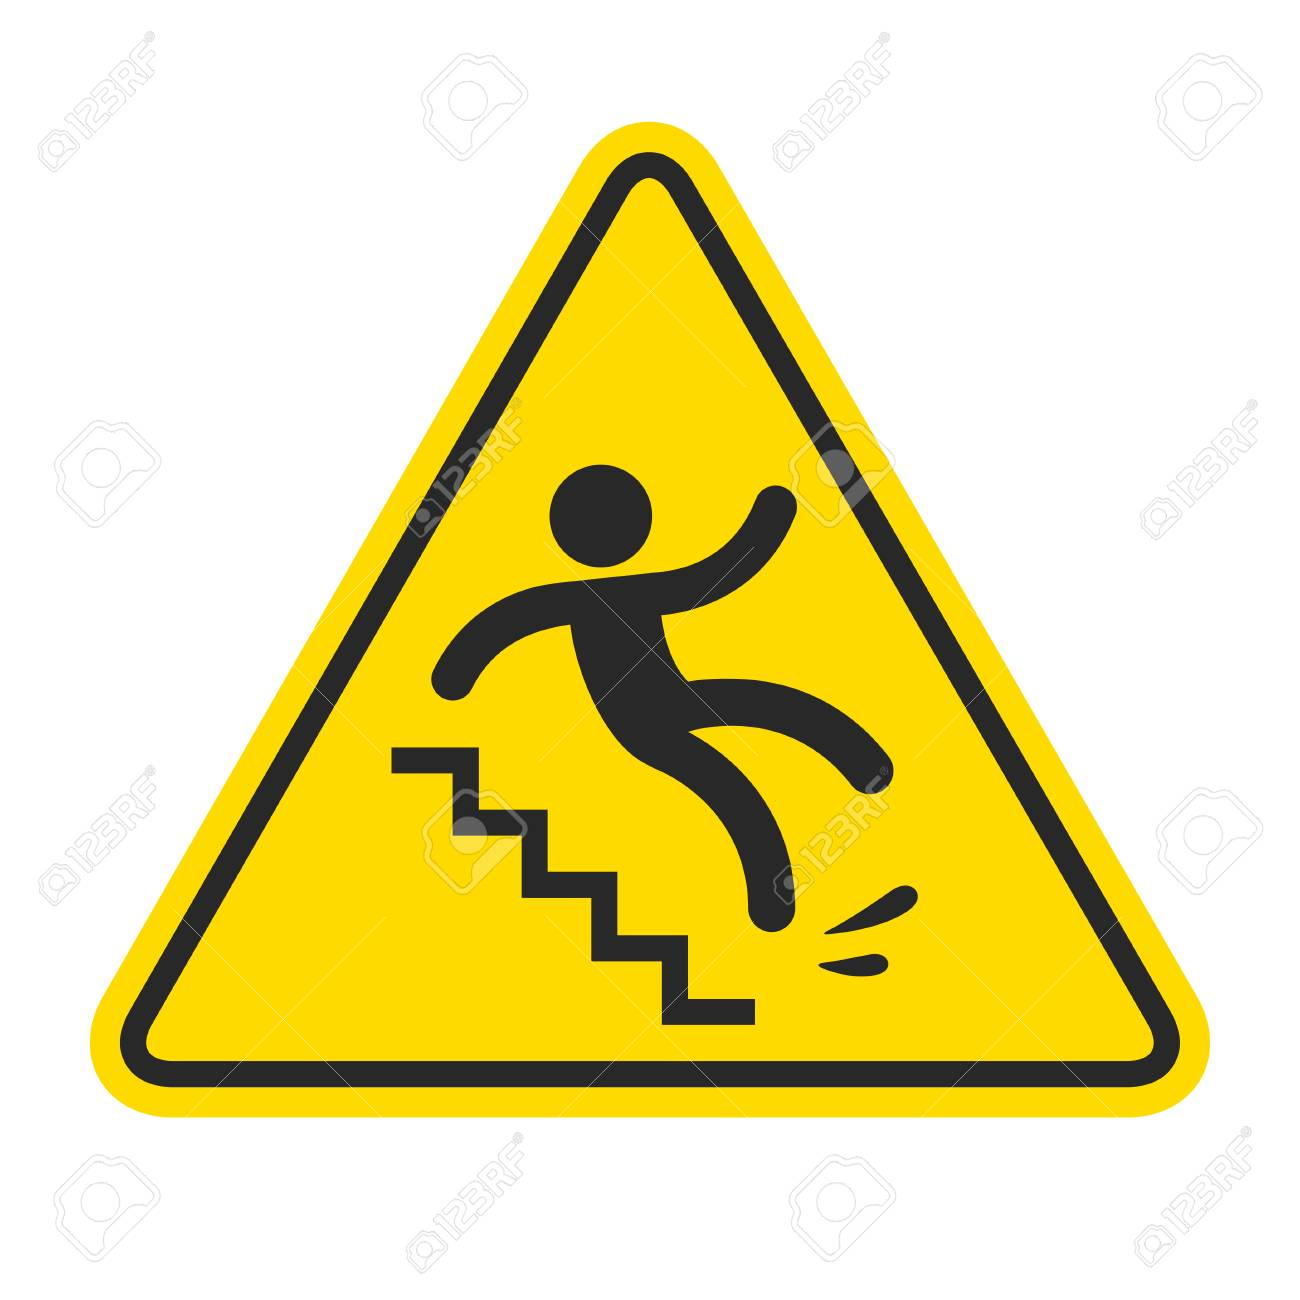 Slippery stairs warning. Yellow triangle symbol with stick figure man falling on stairs. Workplace safety and injury vector illustration. - 89541353